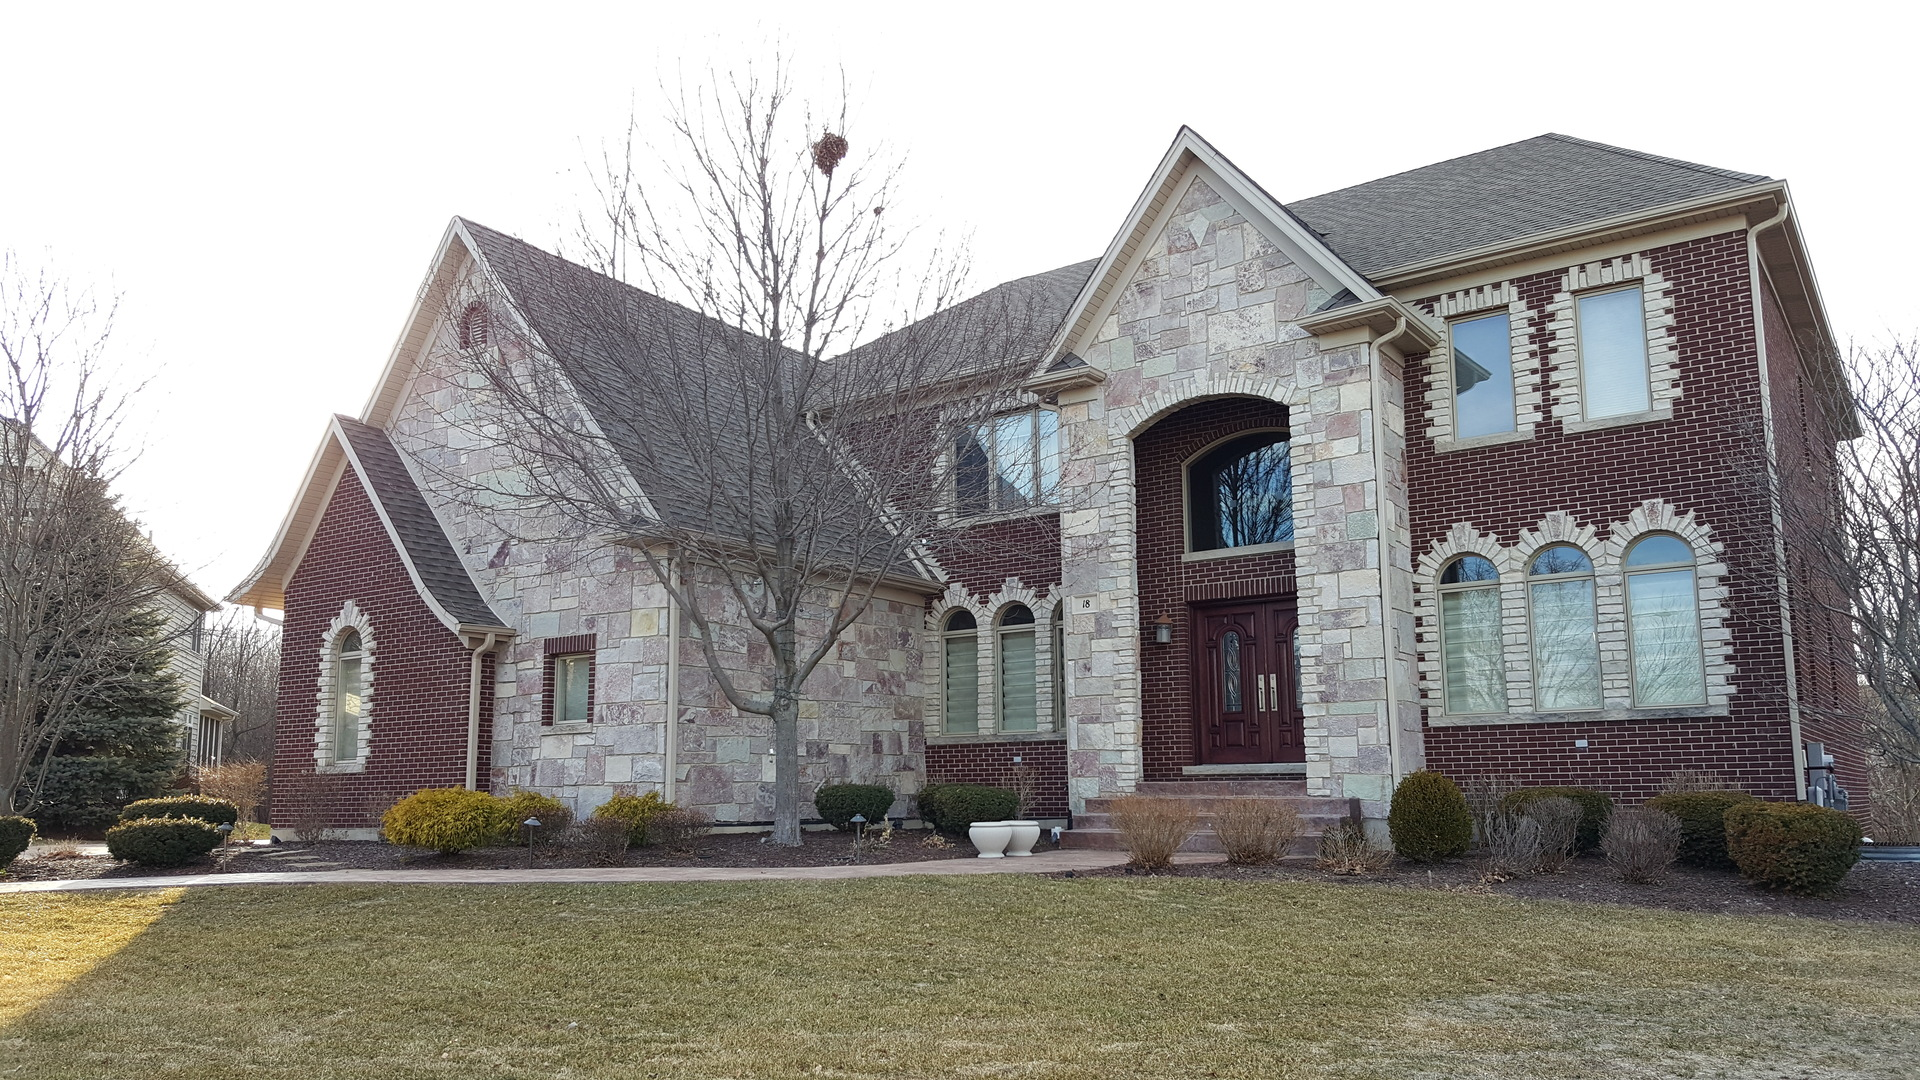 Property for sale at 18 Springbrook Lane, Algonquin,  Il 60102